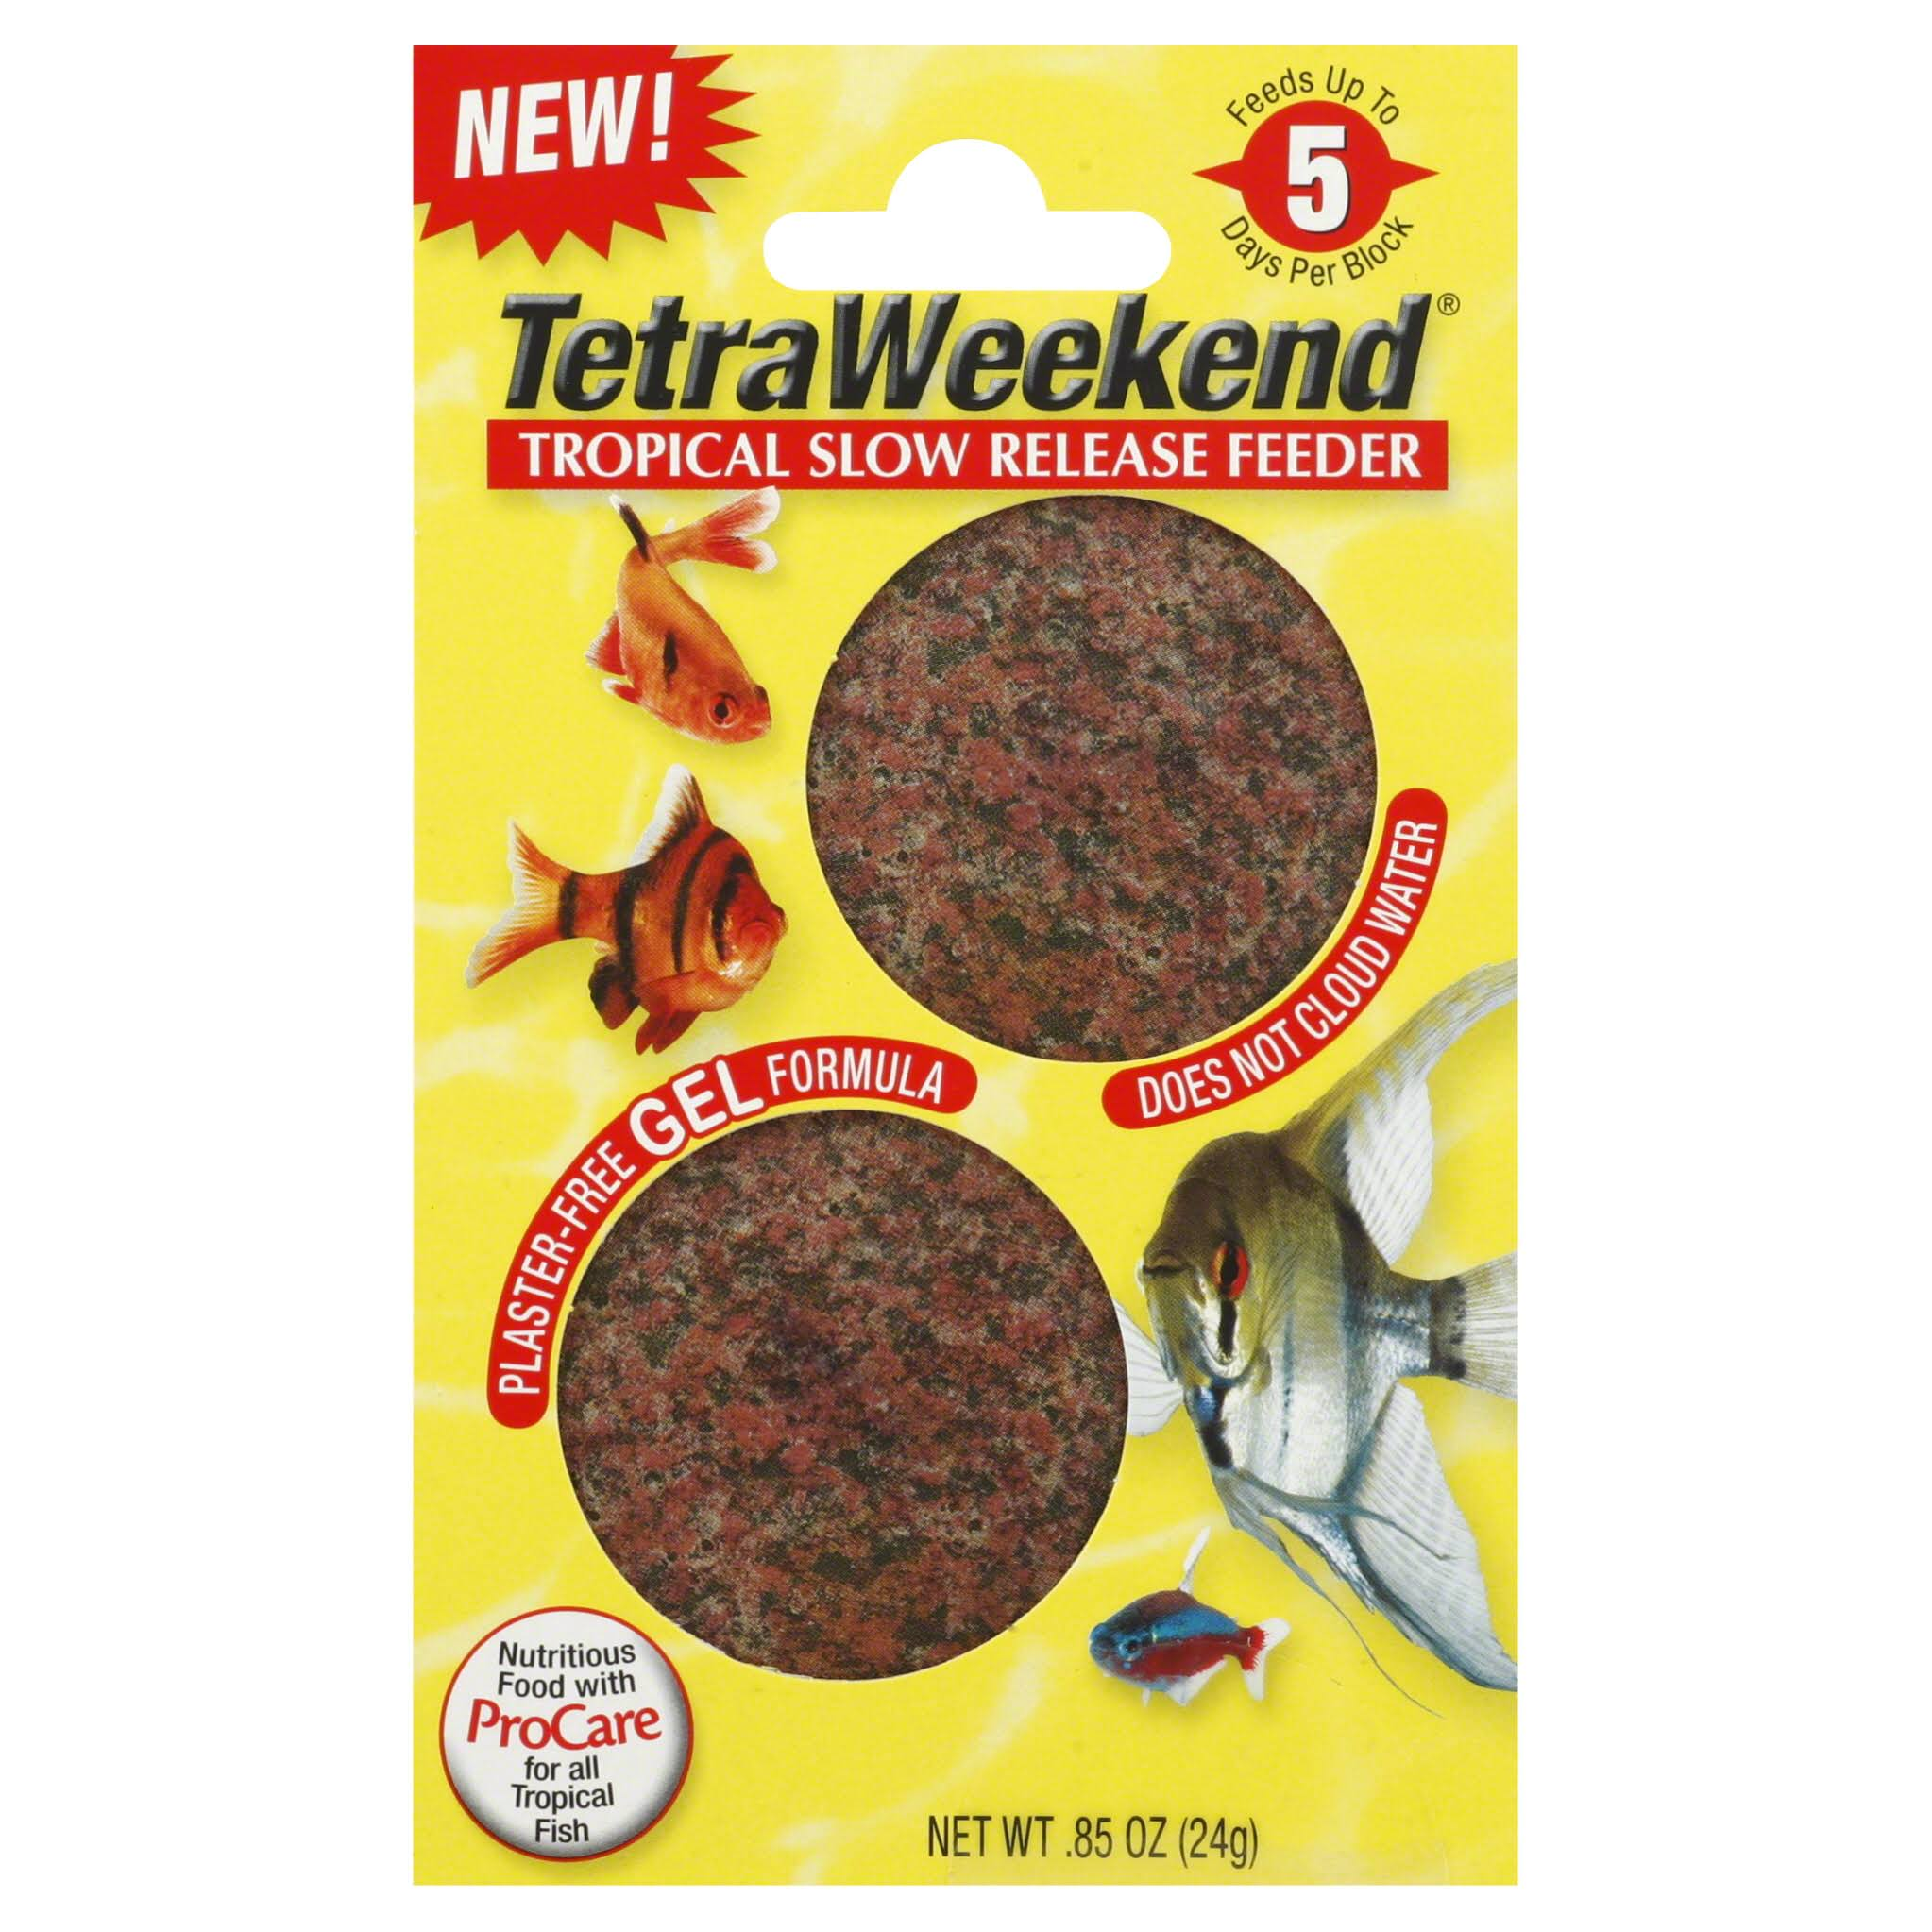 Tetraweekend Tropical Slow Release Feeder Fish Food - 24g